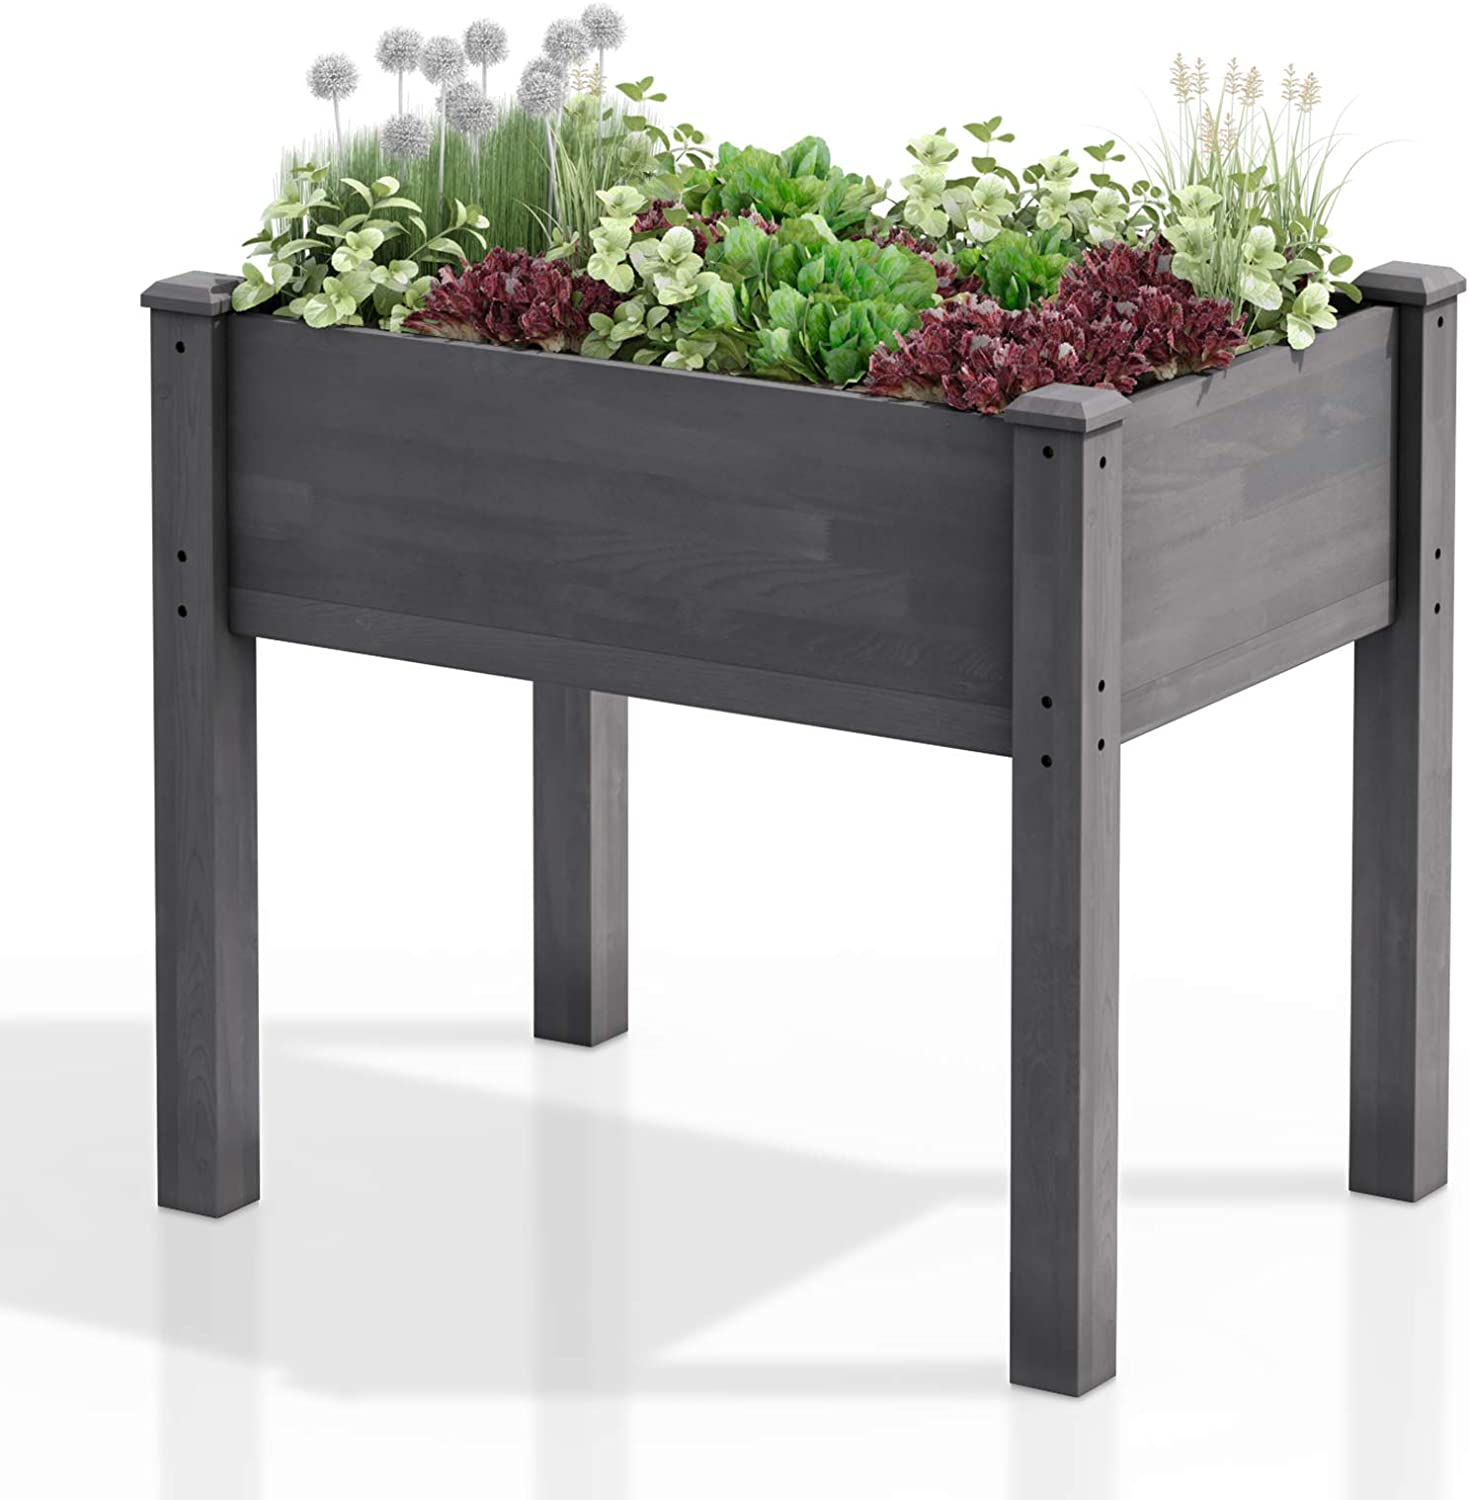 """AMZFINE Heavy Duty Wooden Raised Garden Bed Kit, Solid Wood Elevated Planter Box -34"""" L x 18"""" W x 30"""" H, Grey"""